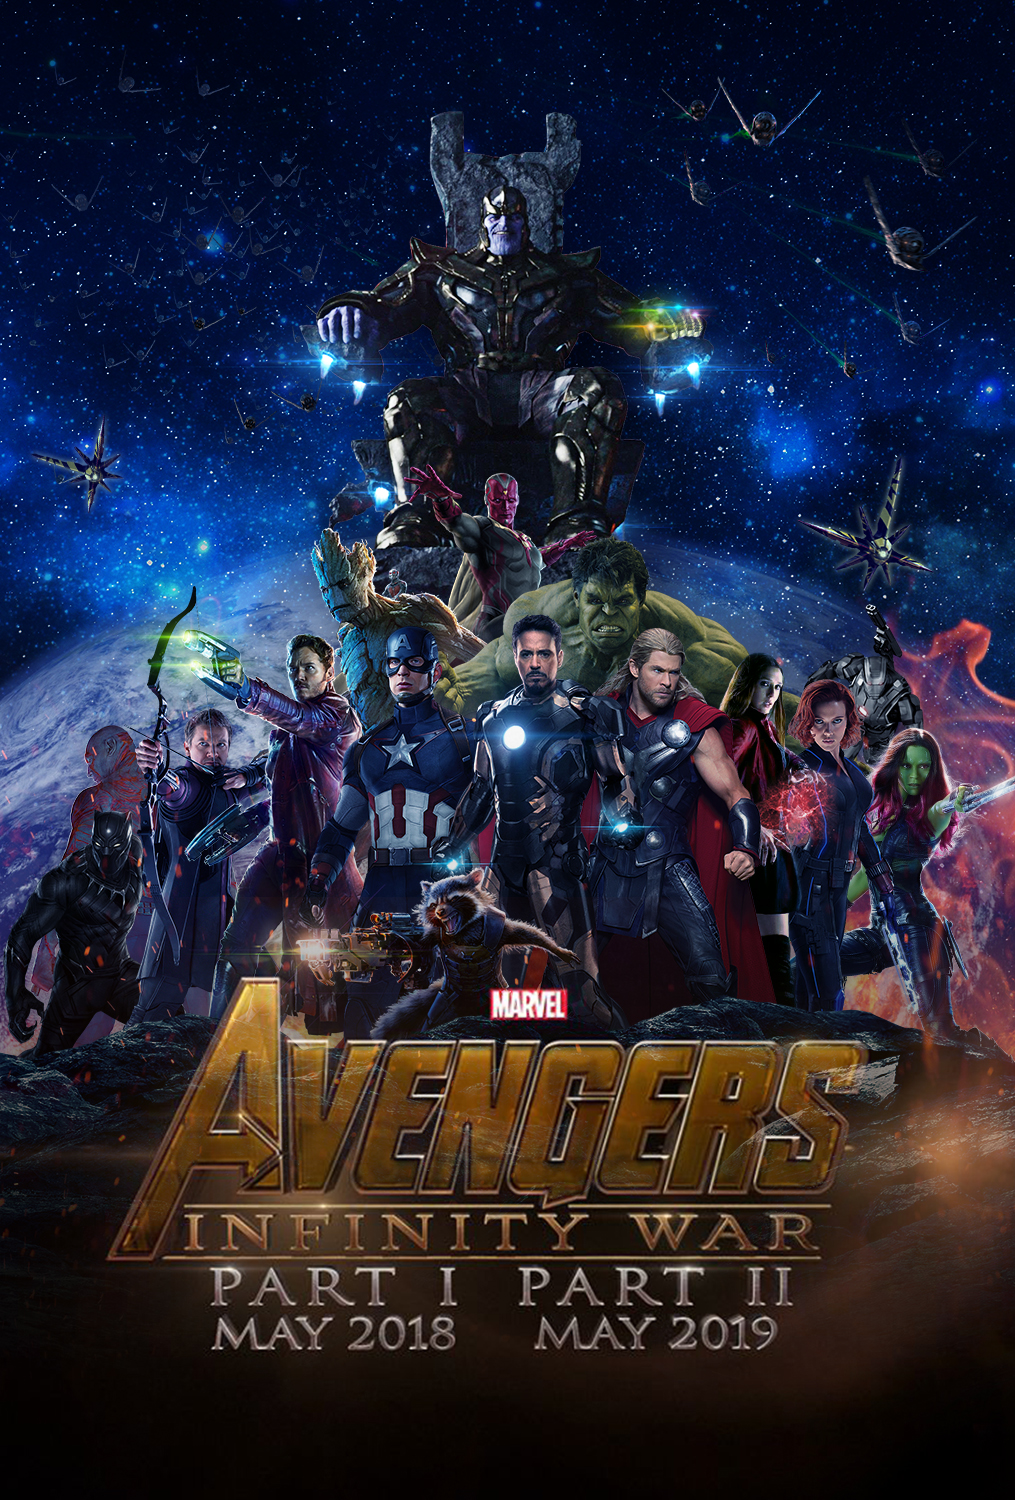 avengers infinity war part 1 and 2 banner poster by oakanshield on